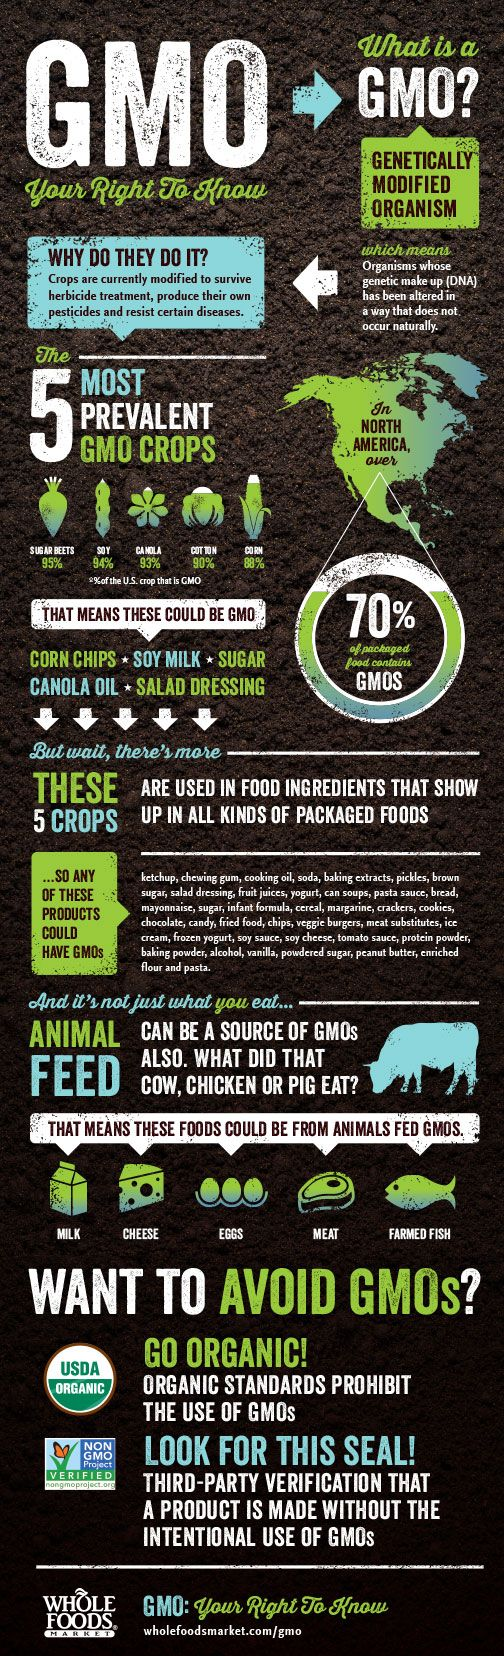 You have the right to know about GMOs! (Genetically Modified Organisms)